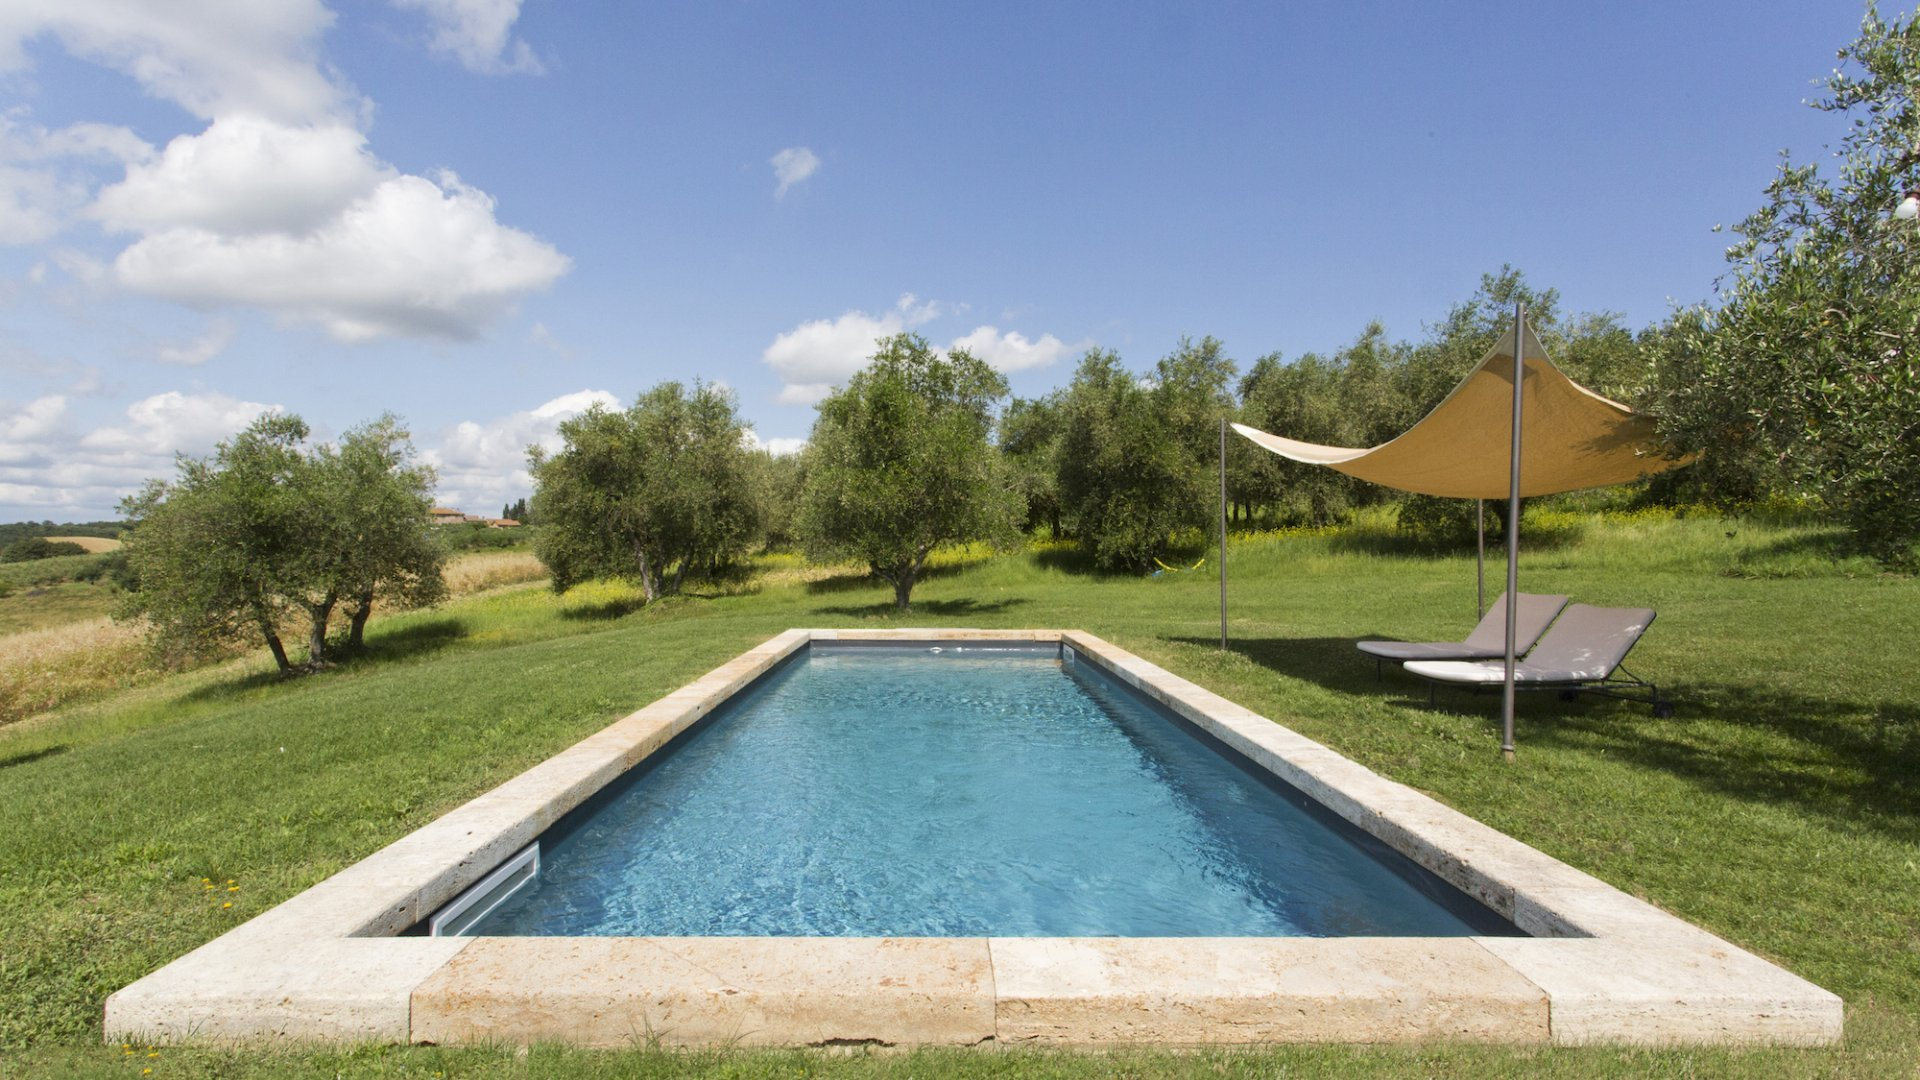 Villas Near Siena Italy luxury villa casina - home in italy